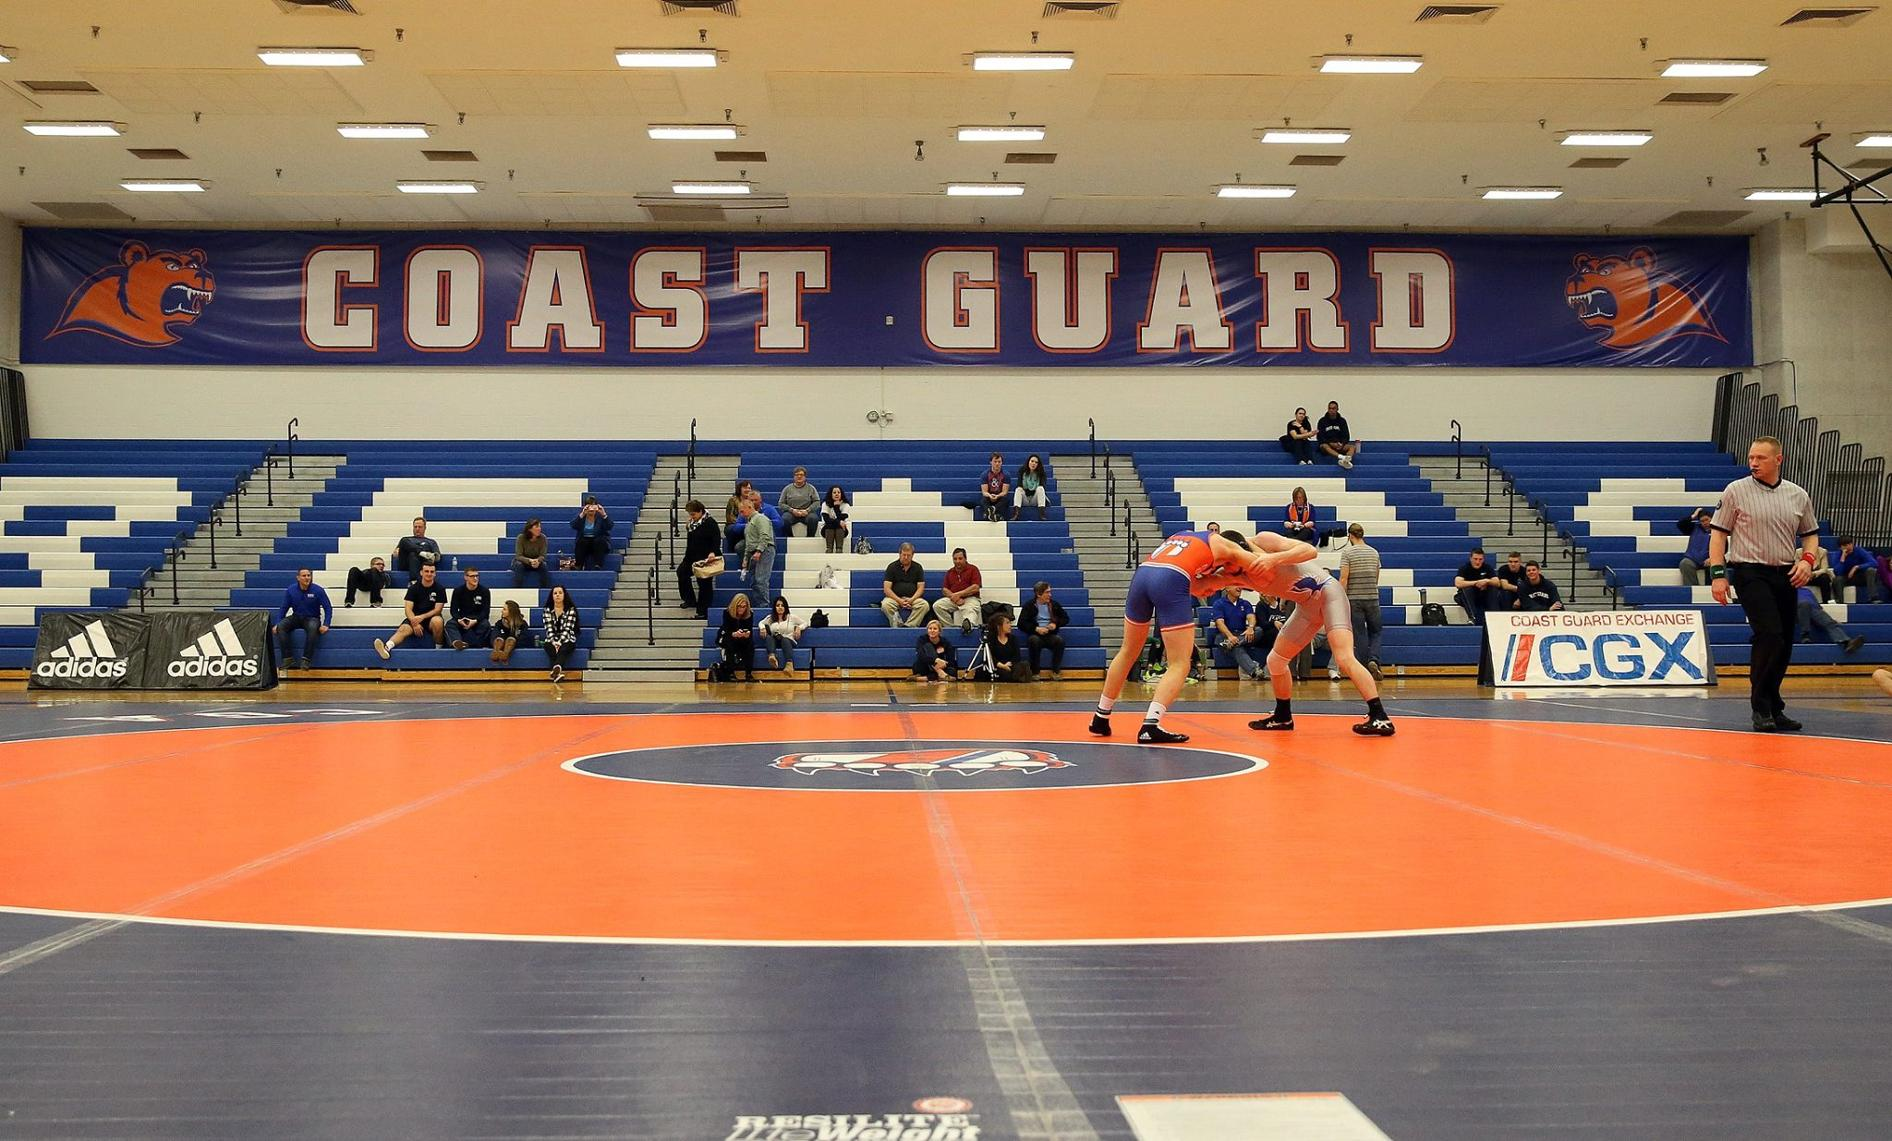 CGA Wrestling: An Inside Look